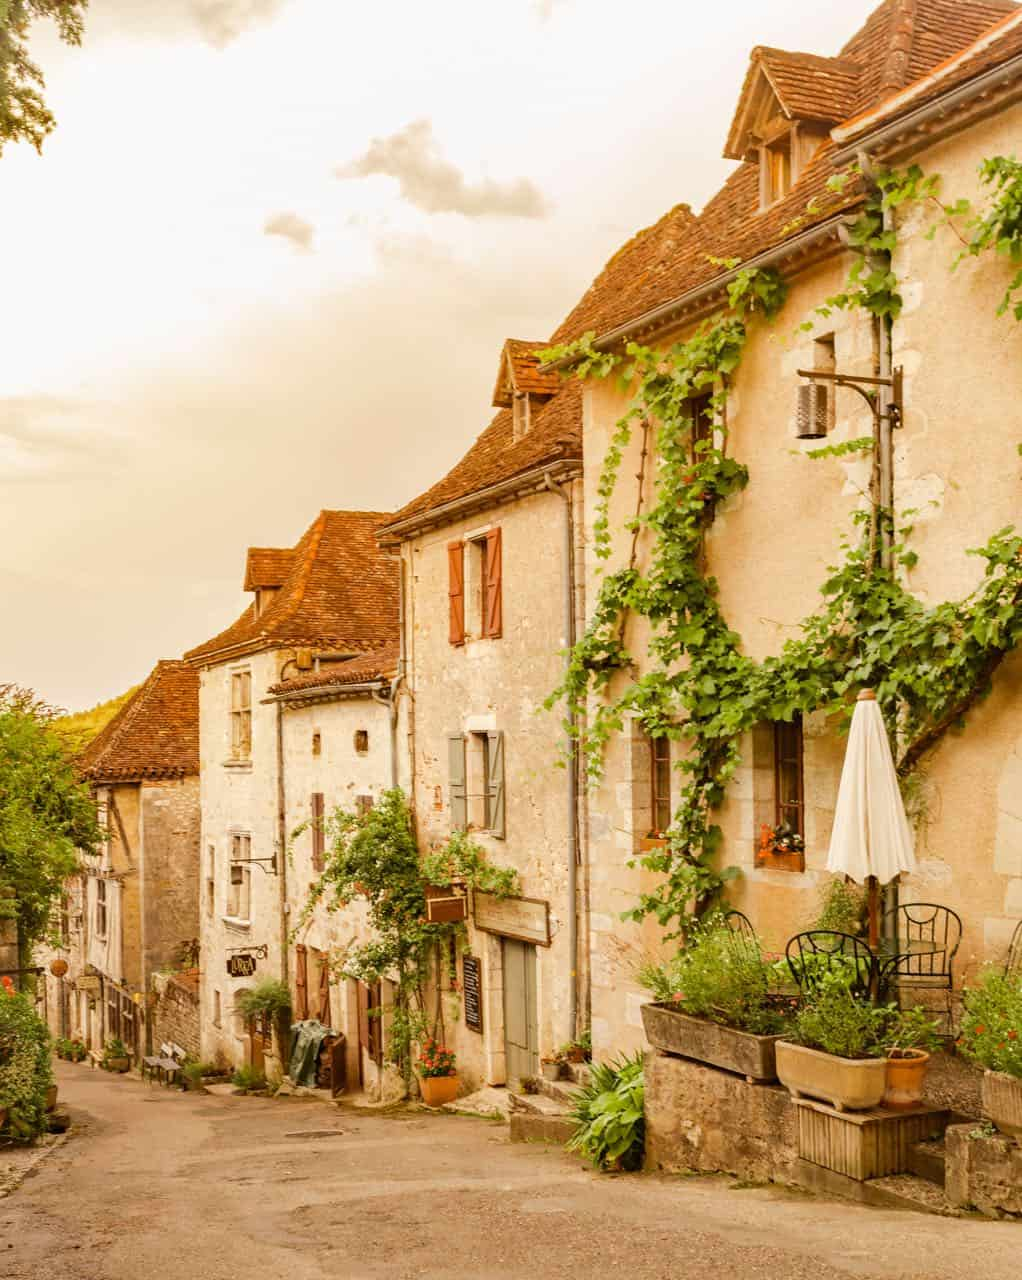 street view of medieval town in France